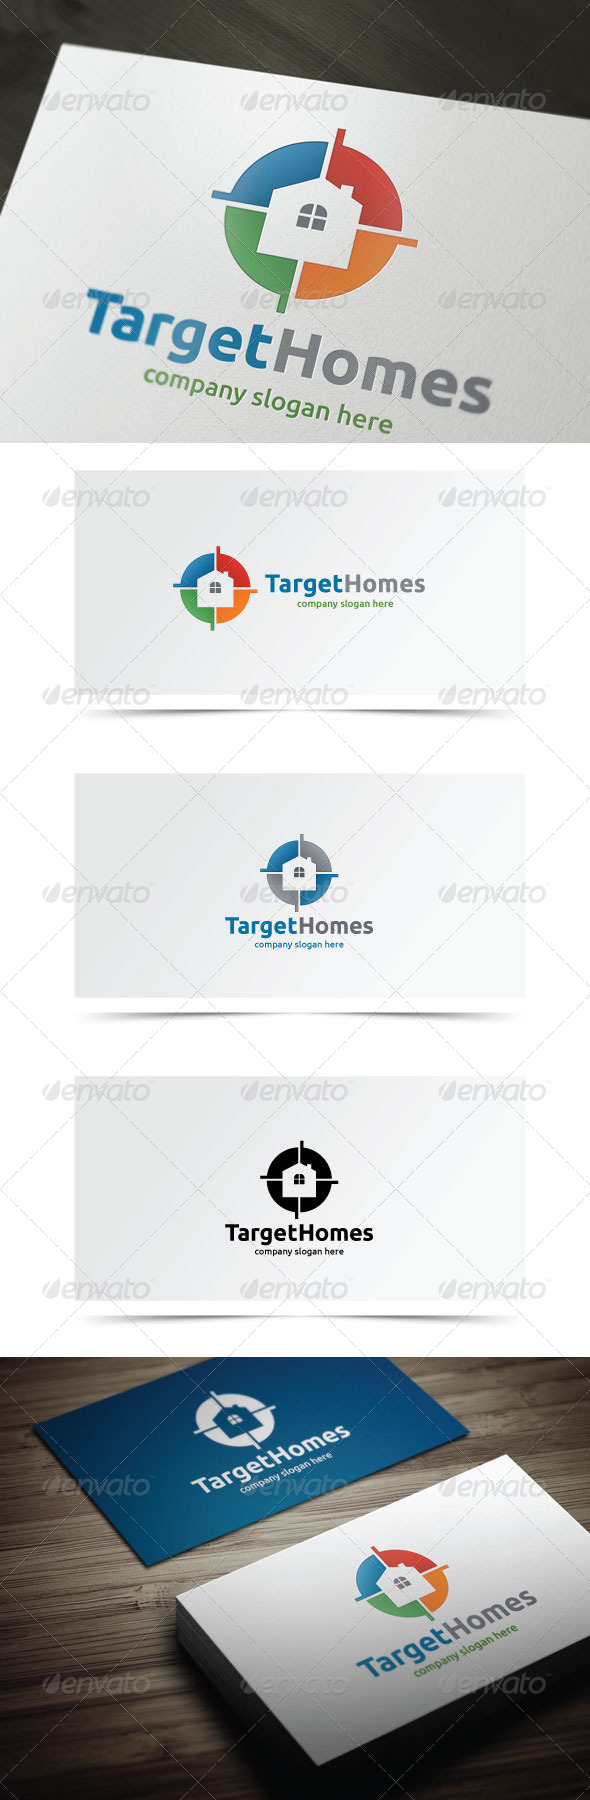 GraphicRiver Target Homes 7516611